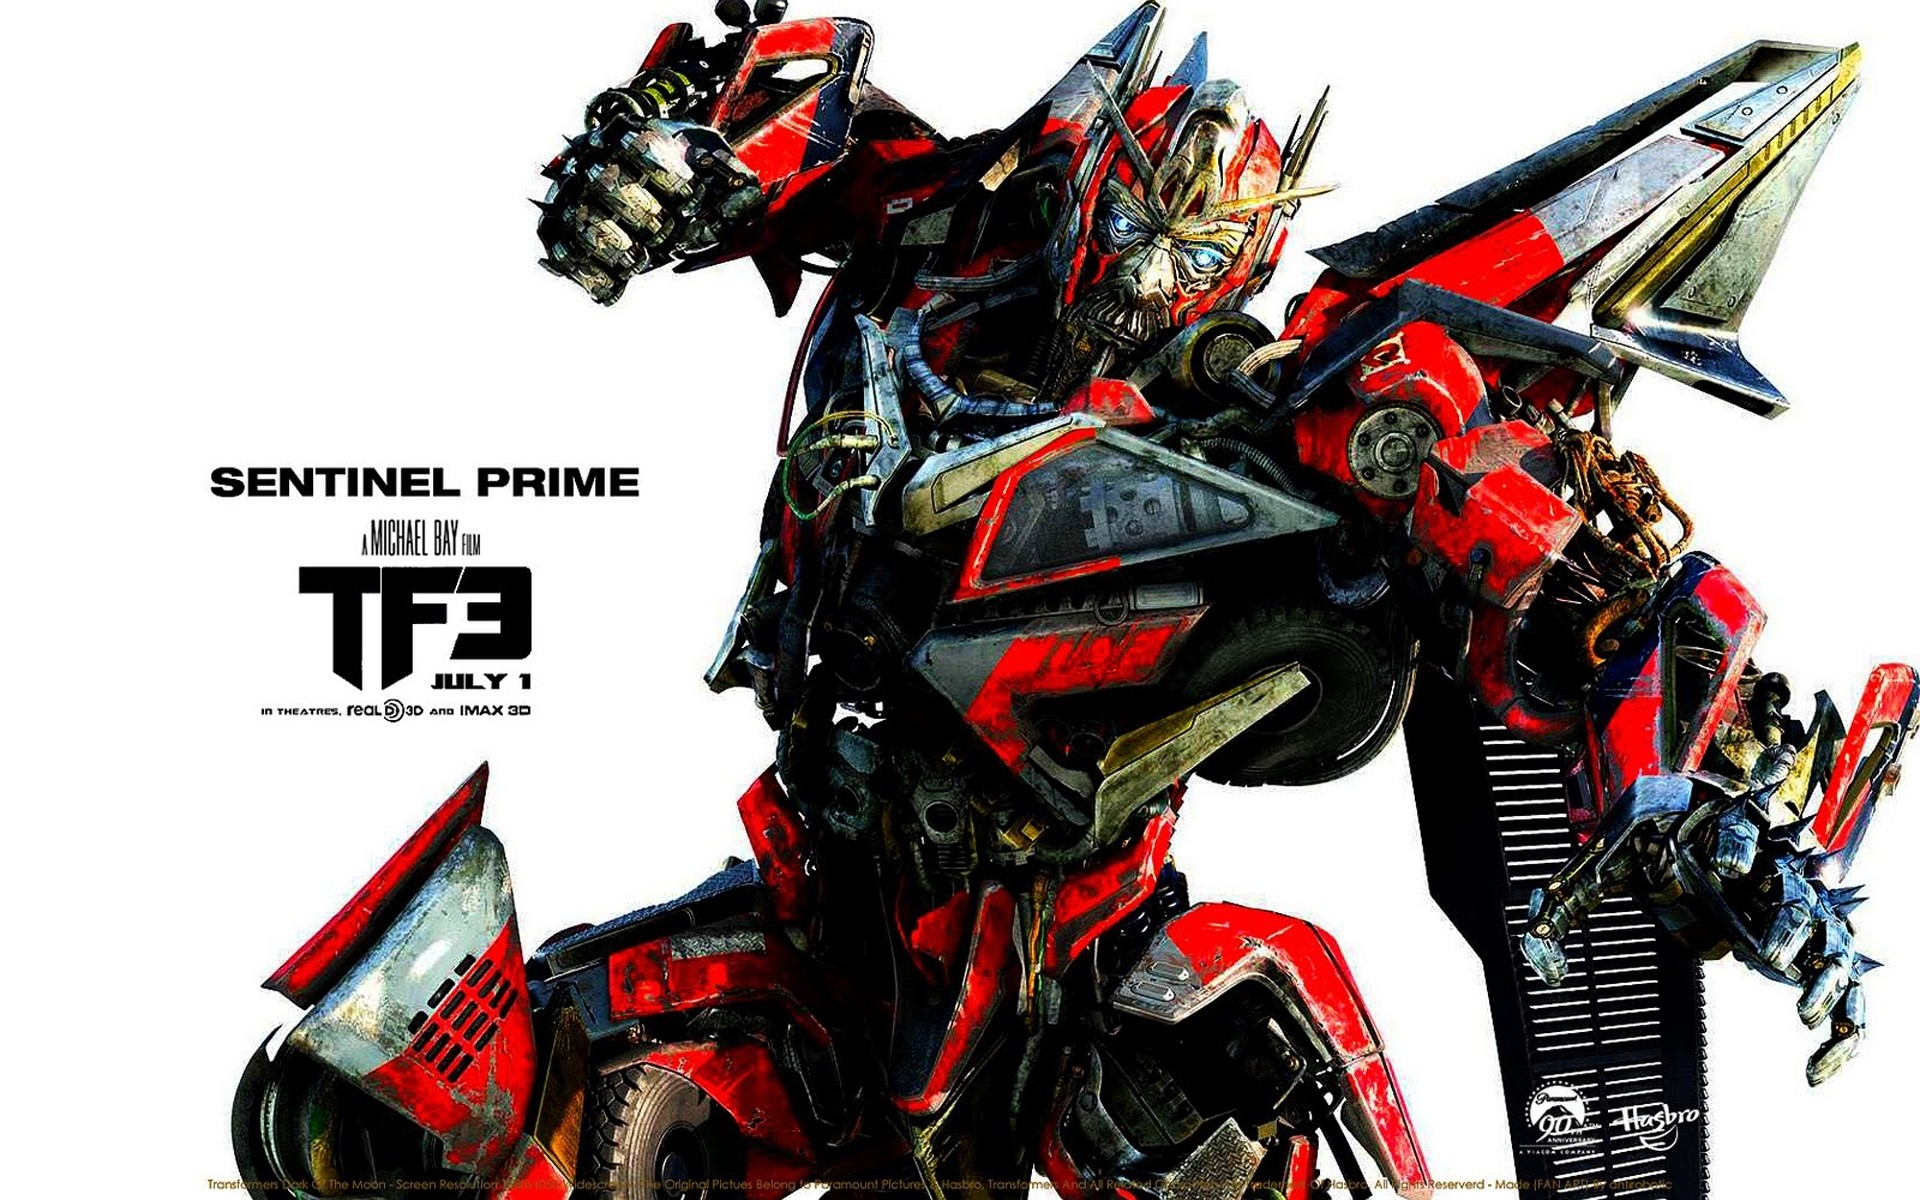 Transformer Wallpaper Hd Posted By Ryan Tremblay